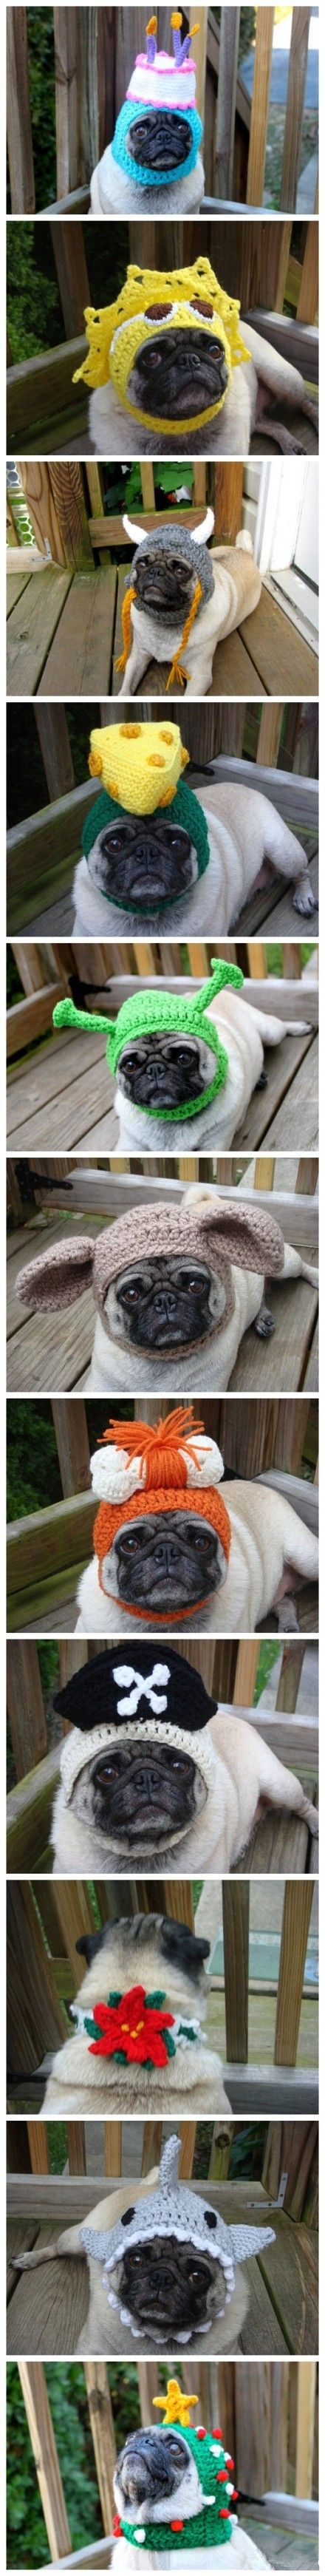 Omg this is to adorable!!